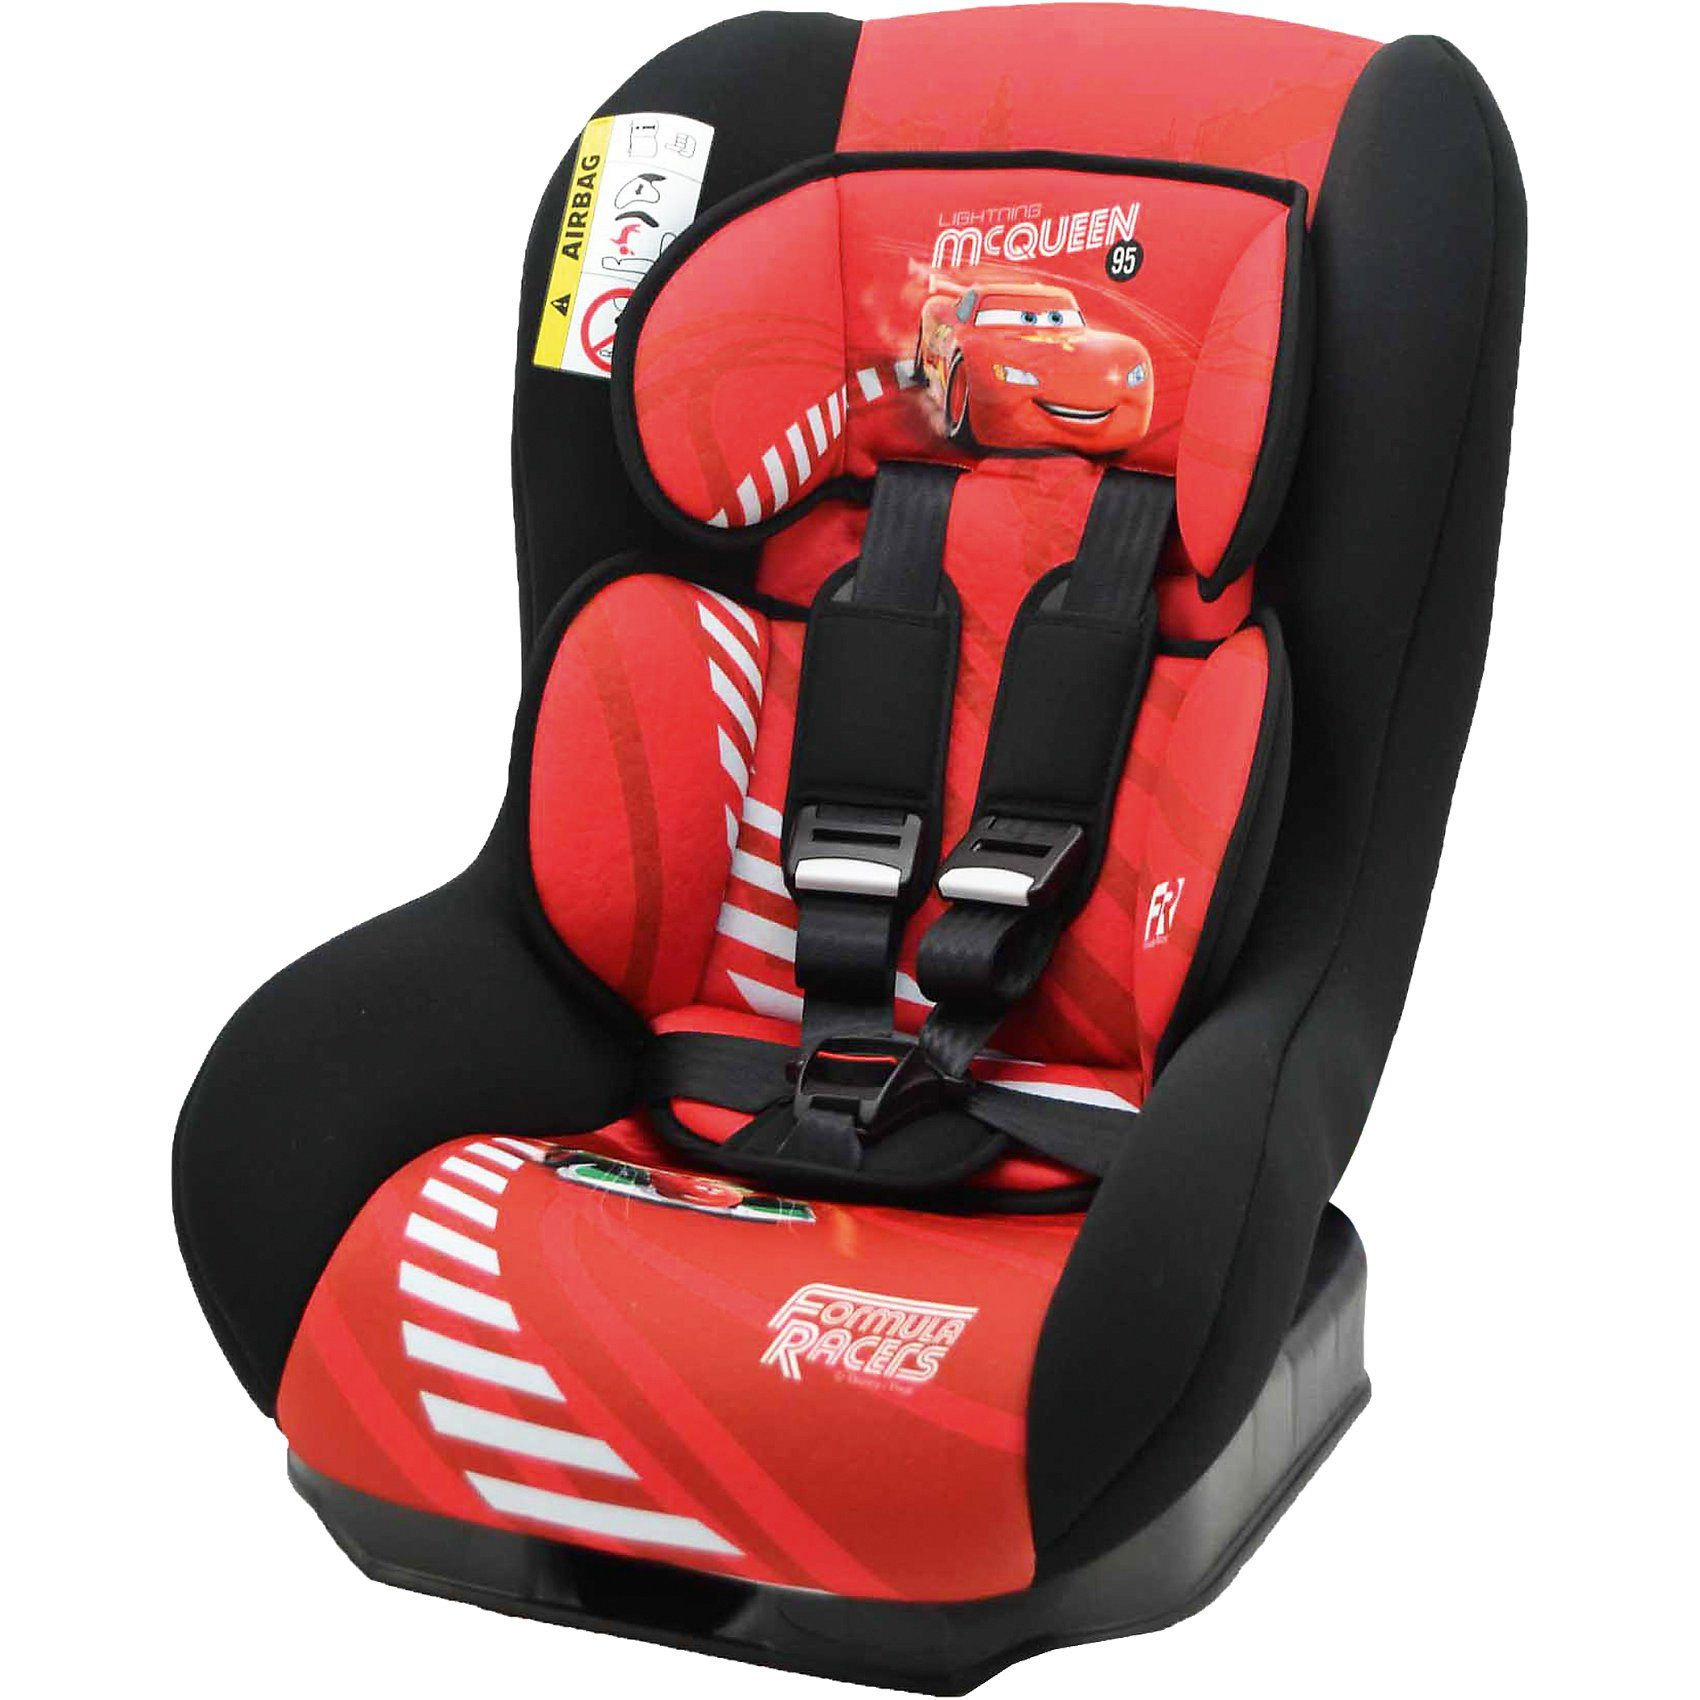 Osann Auto-Kindersitz Safety Plus NT Cars McQueen, 2018